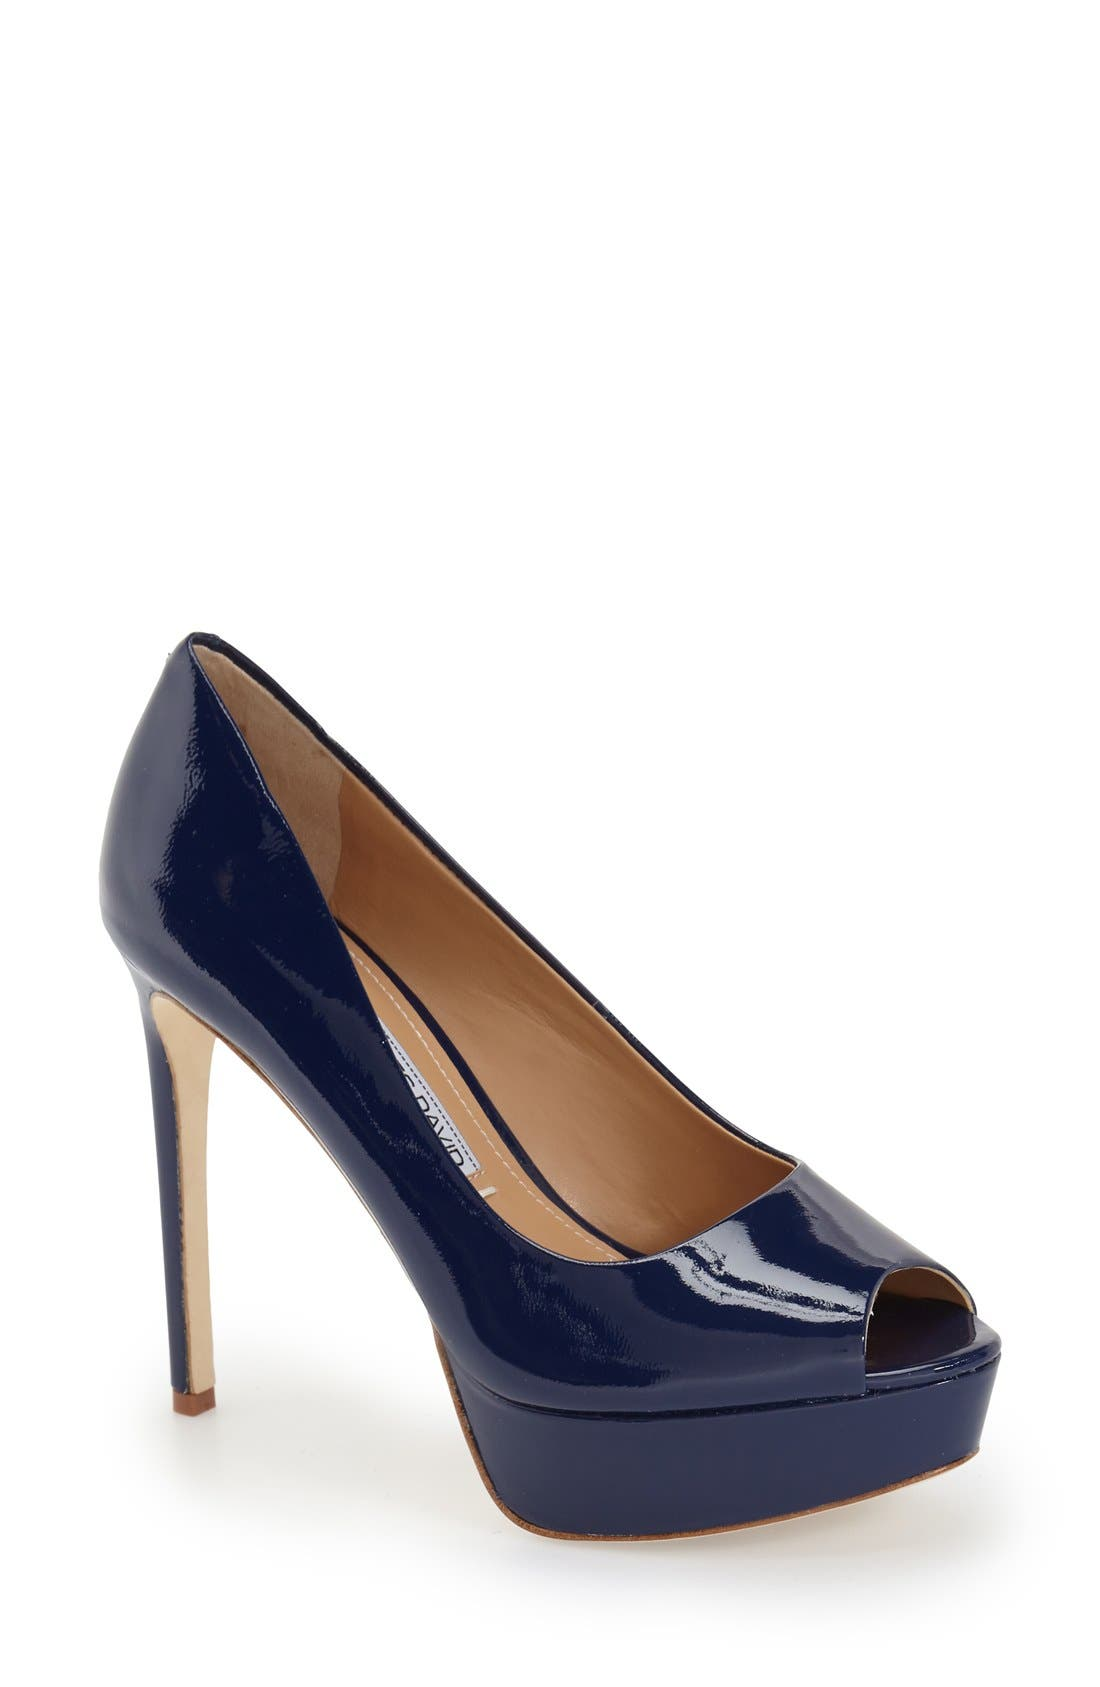 Alternate Image 1 Selected - Charles David 'Nivia' Platform Pump (Women)